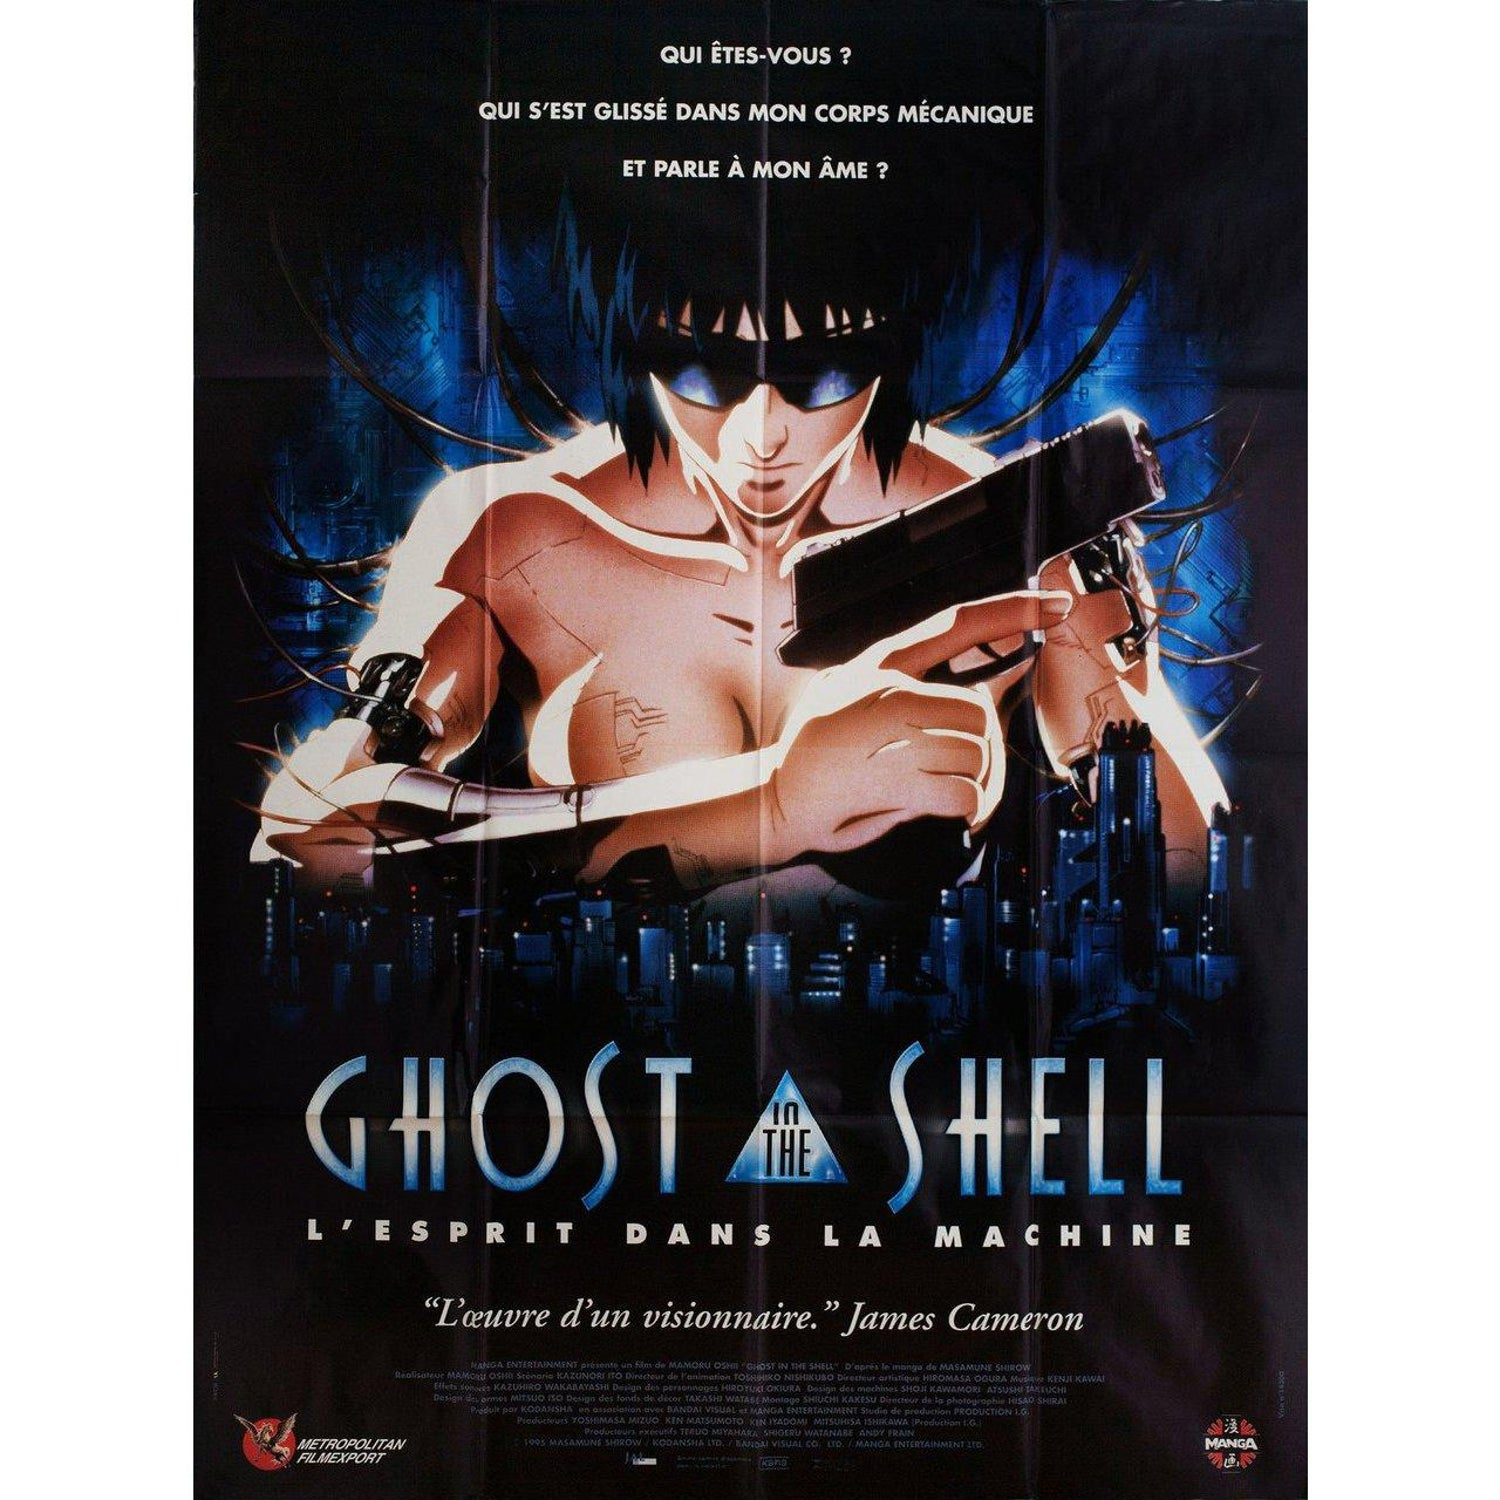 Ghost In The Shell 1995 French Grande Film Poster For Sale At 1stdibs